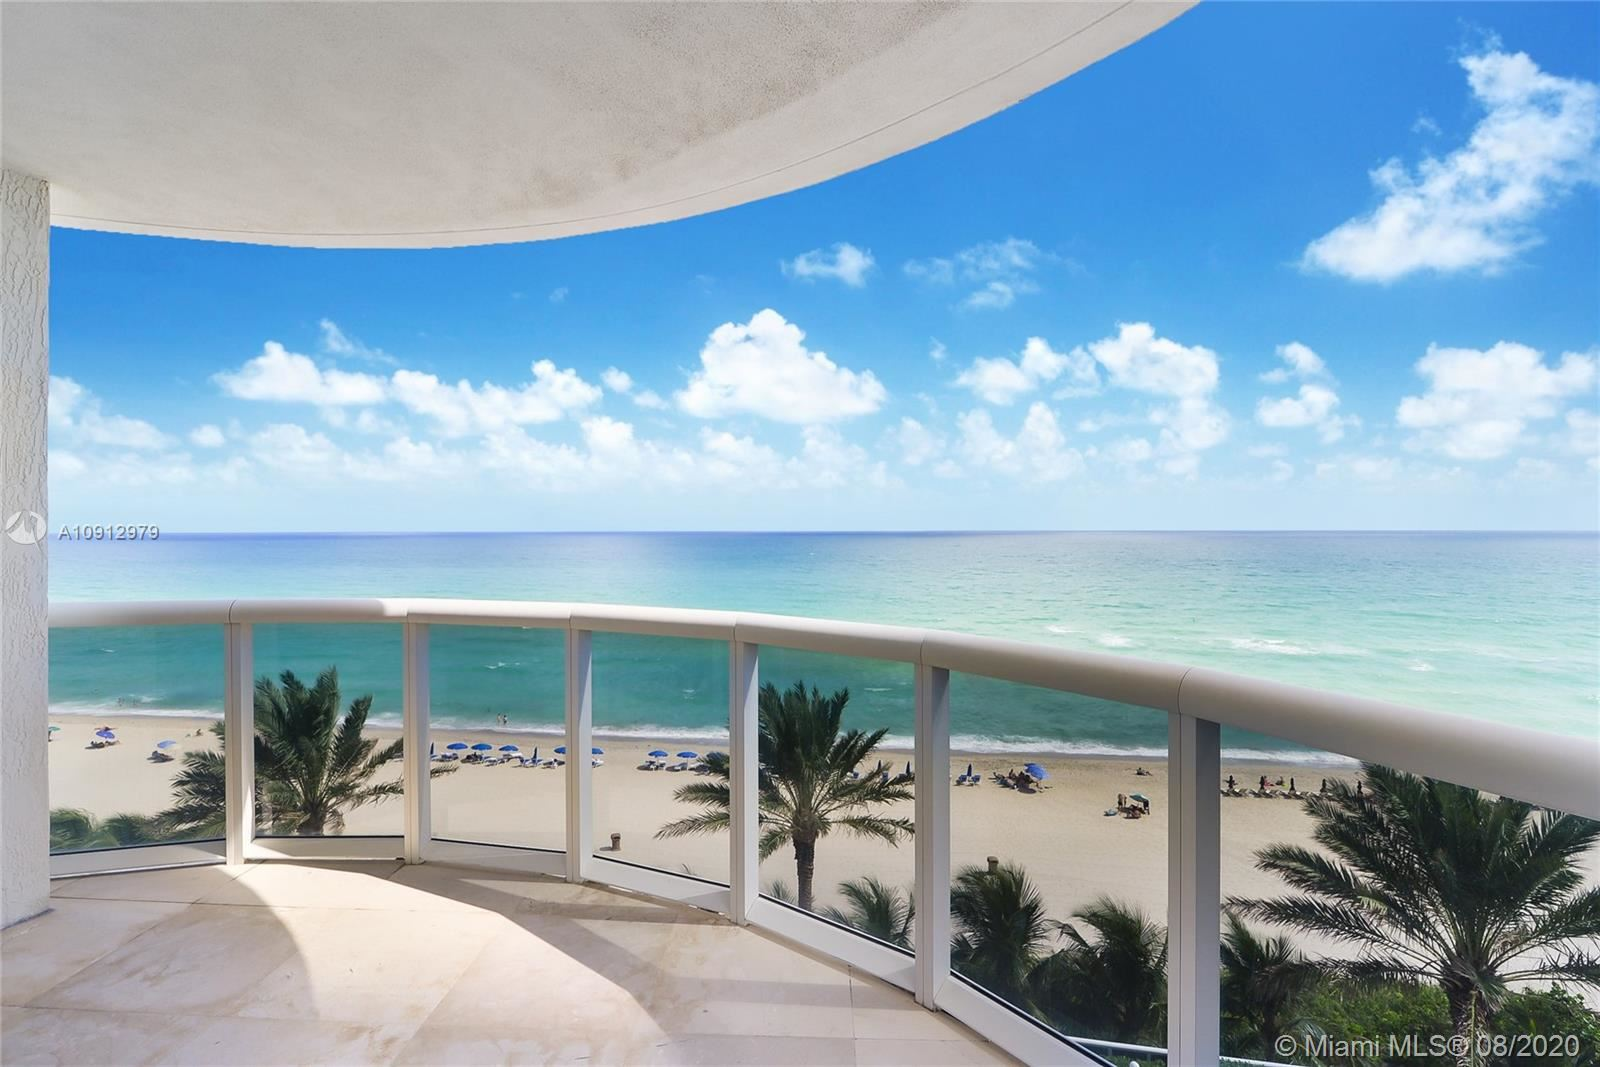 17201 Collins Ave #901, Sunny Isles, FL 33160 - #: A10912979